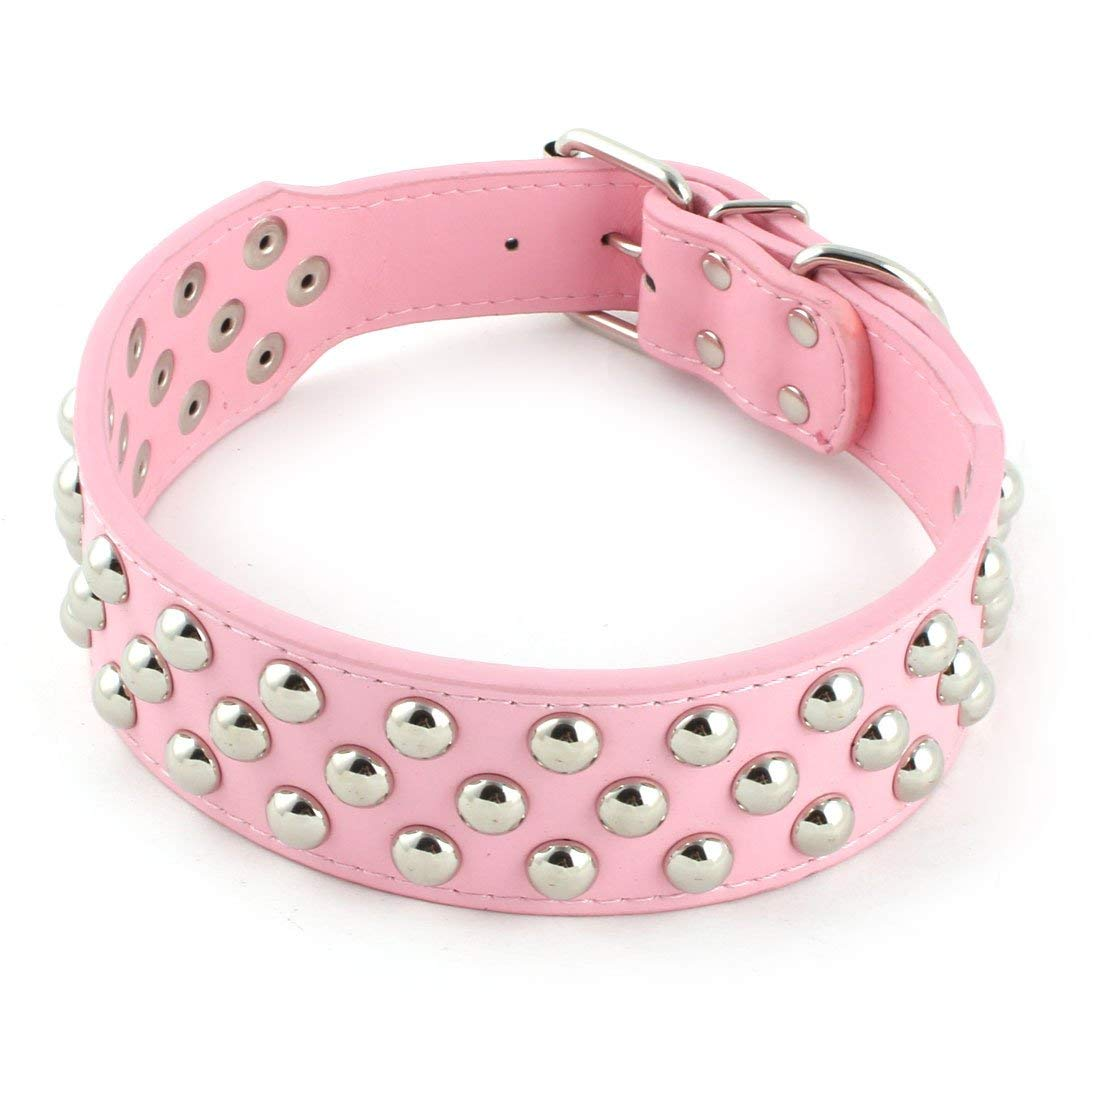 Metal Single Buckle 3 Rows Rivets Studded Dog Puppy Pet Collar M Size Pink